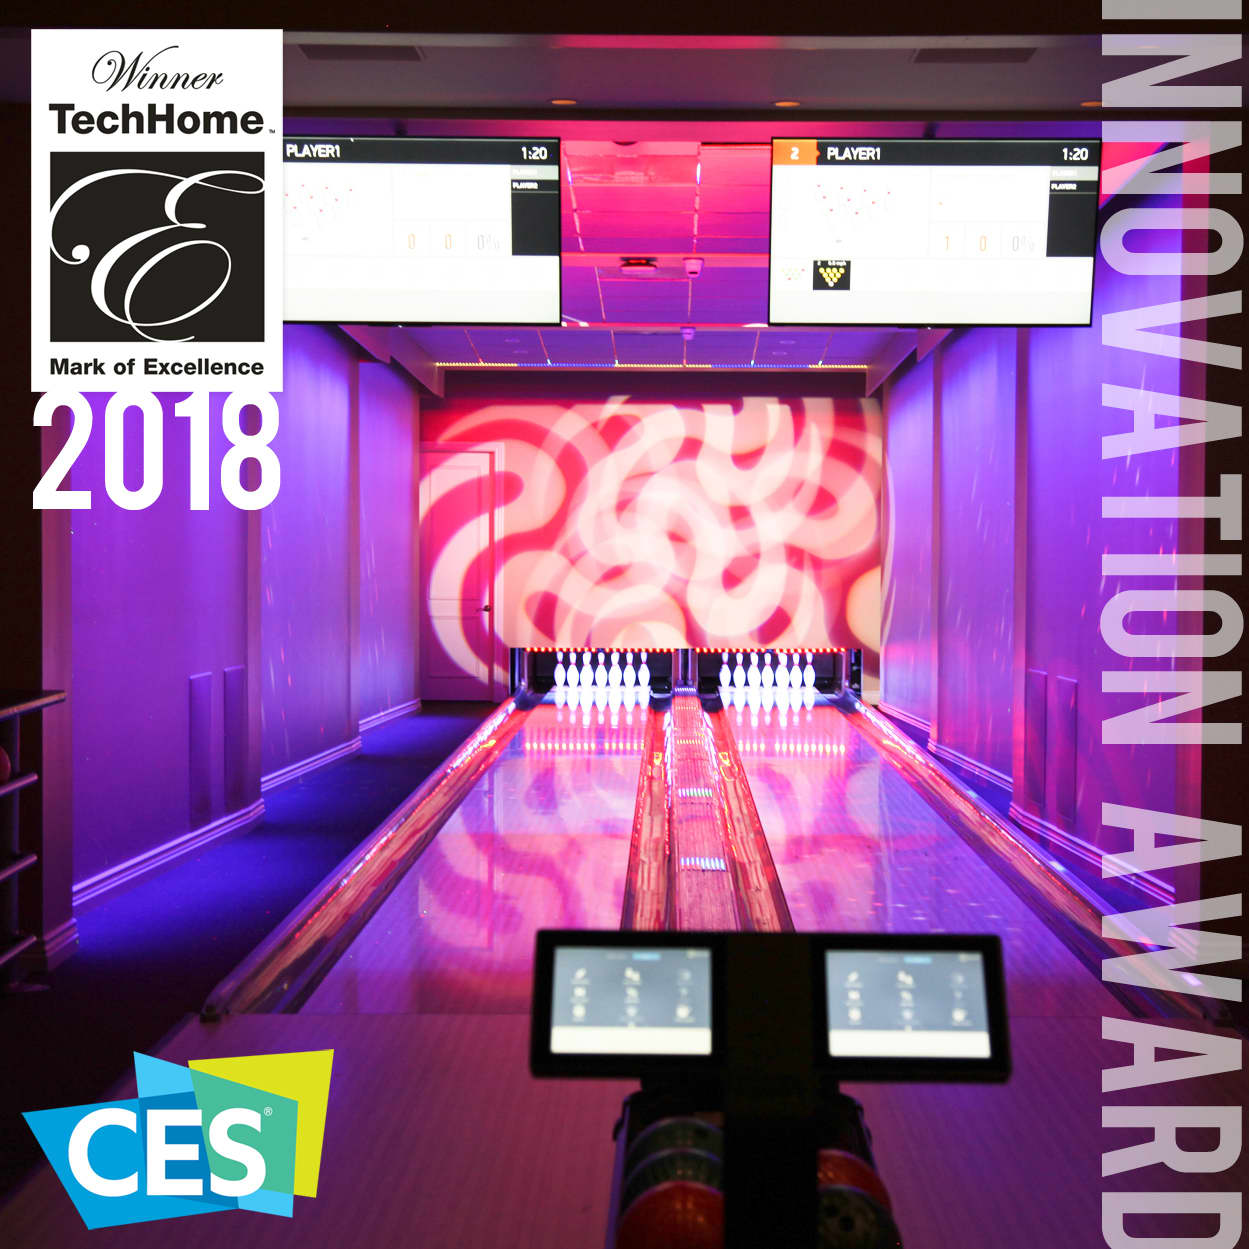 AI-driven Interactive Bowling Alley. CES2018 Innovation Award Winner.